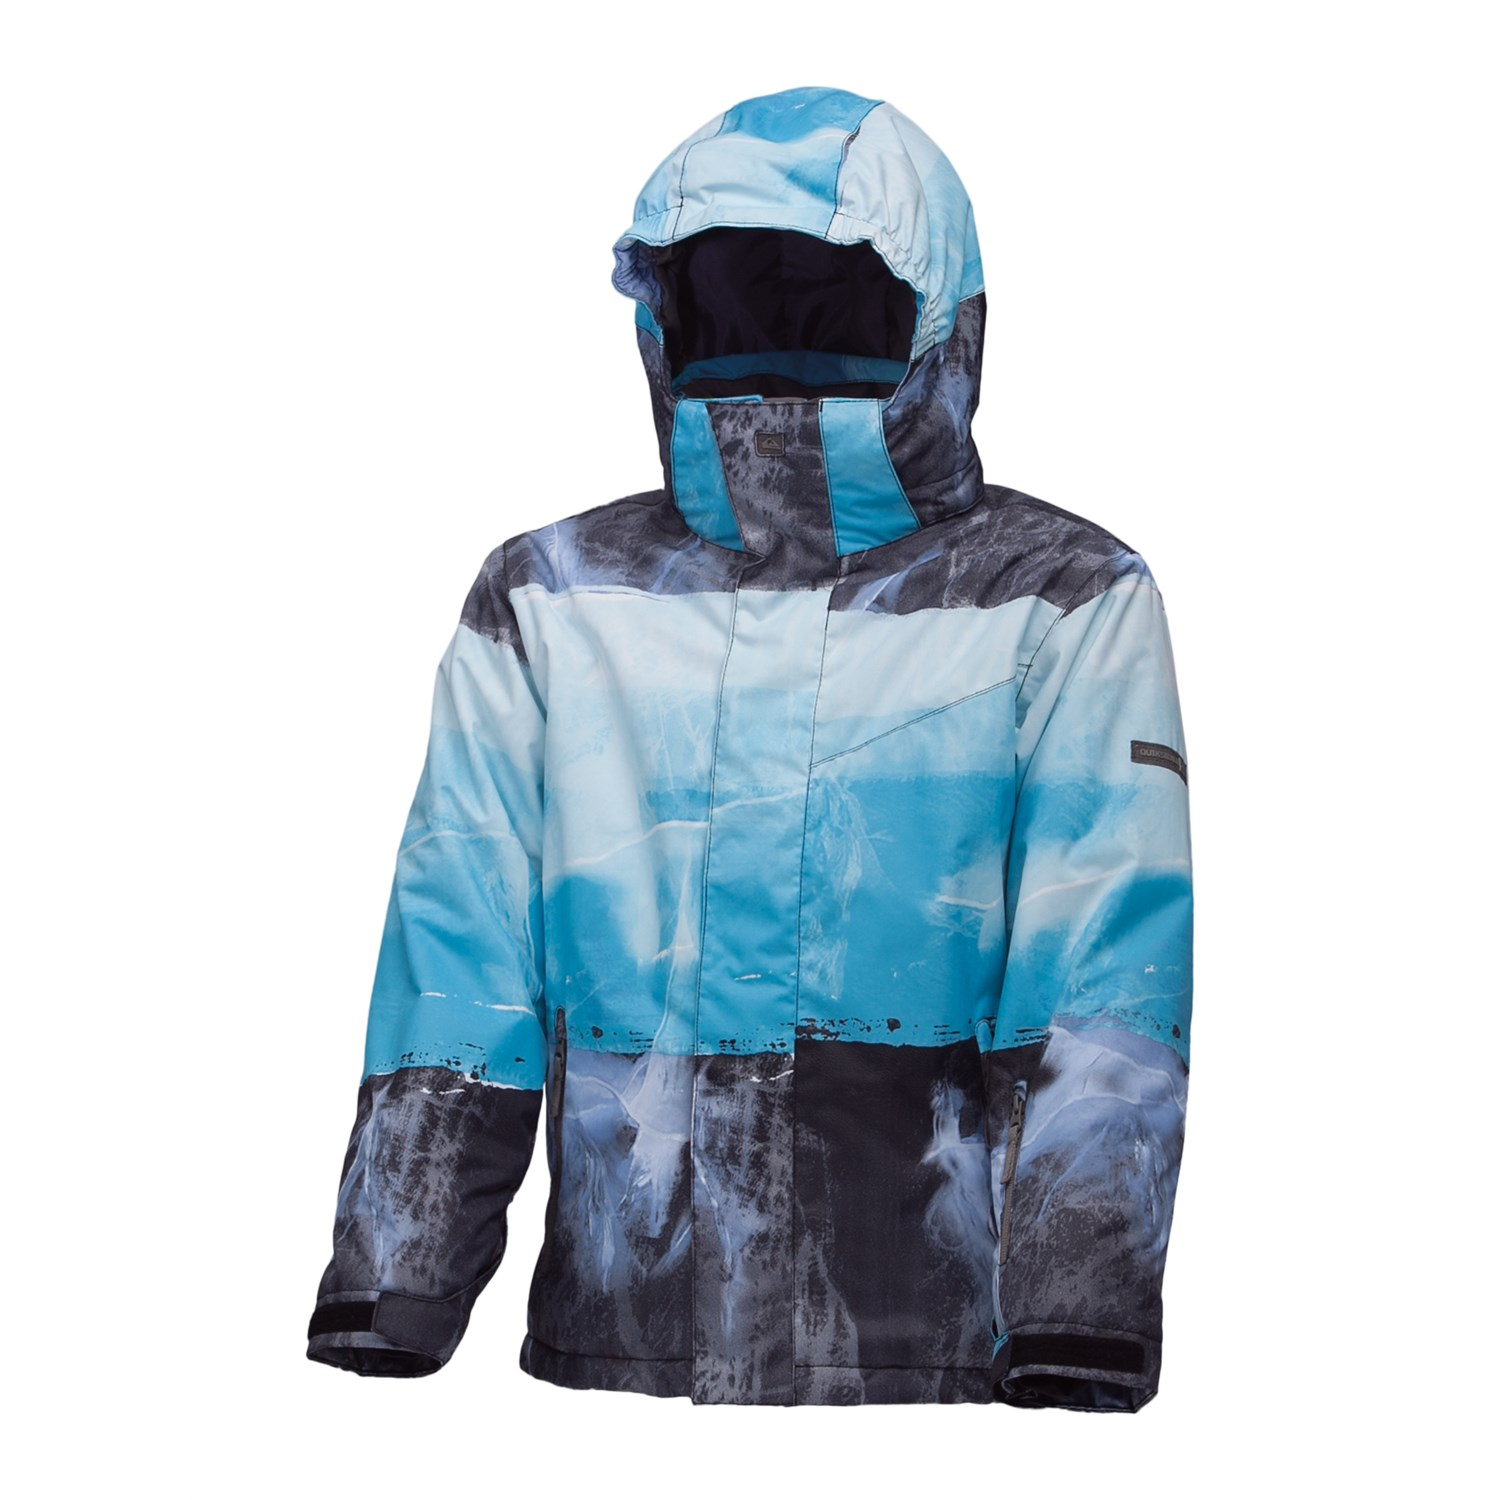 5f631ab33 Quiksilver Next Mission Jacket - Youth - Boy s